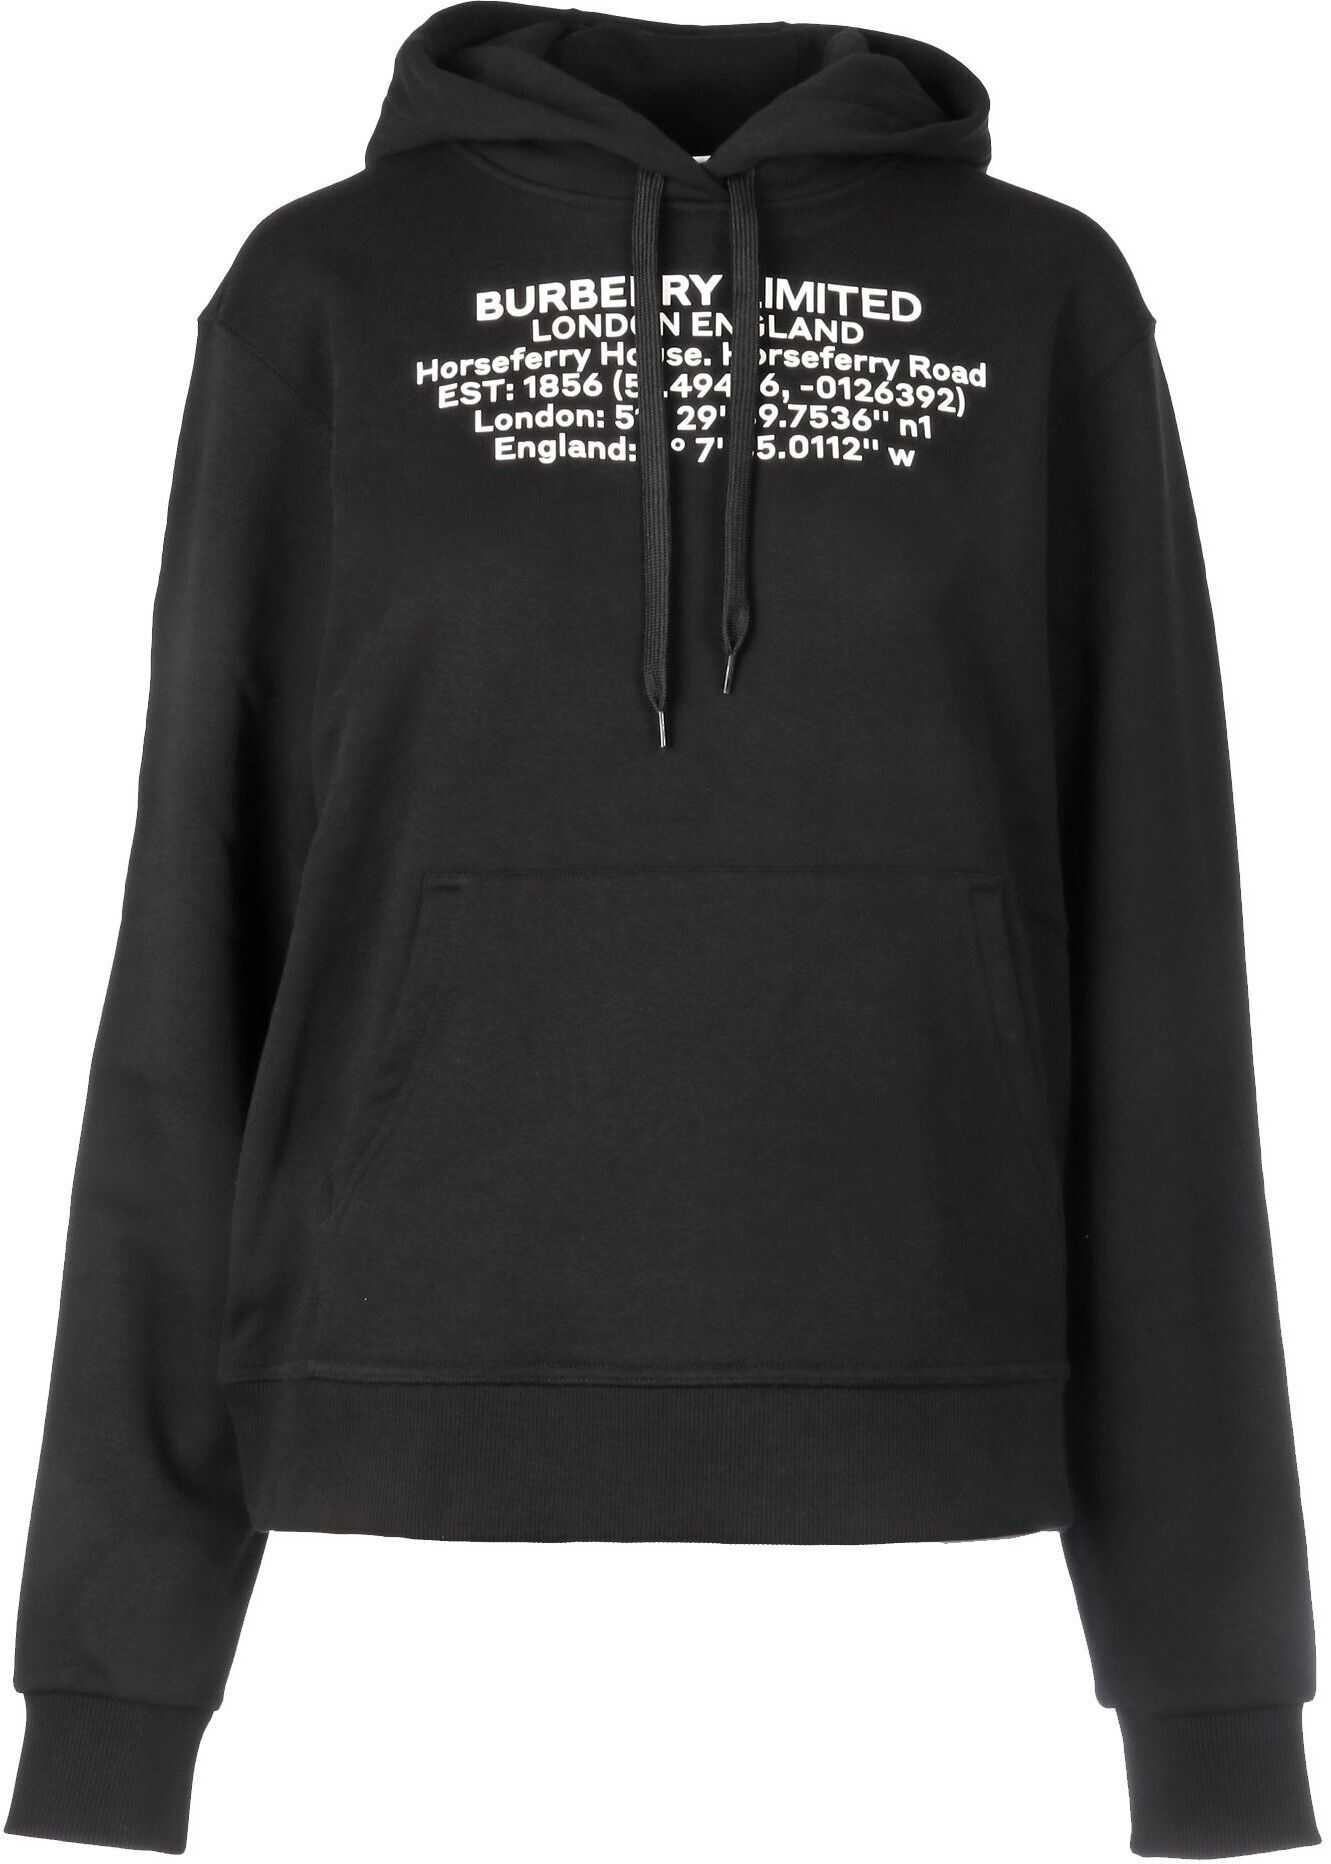 Burberry Cotton Sweatshirt BLACK